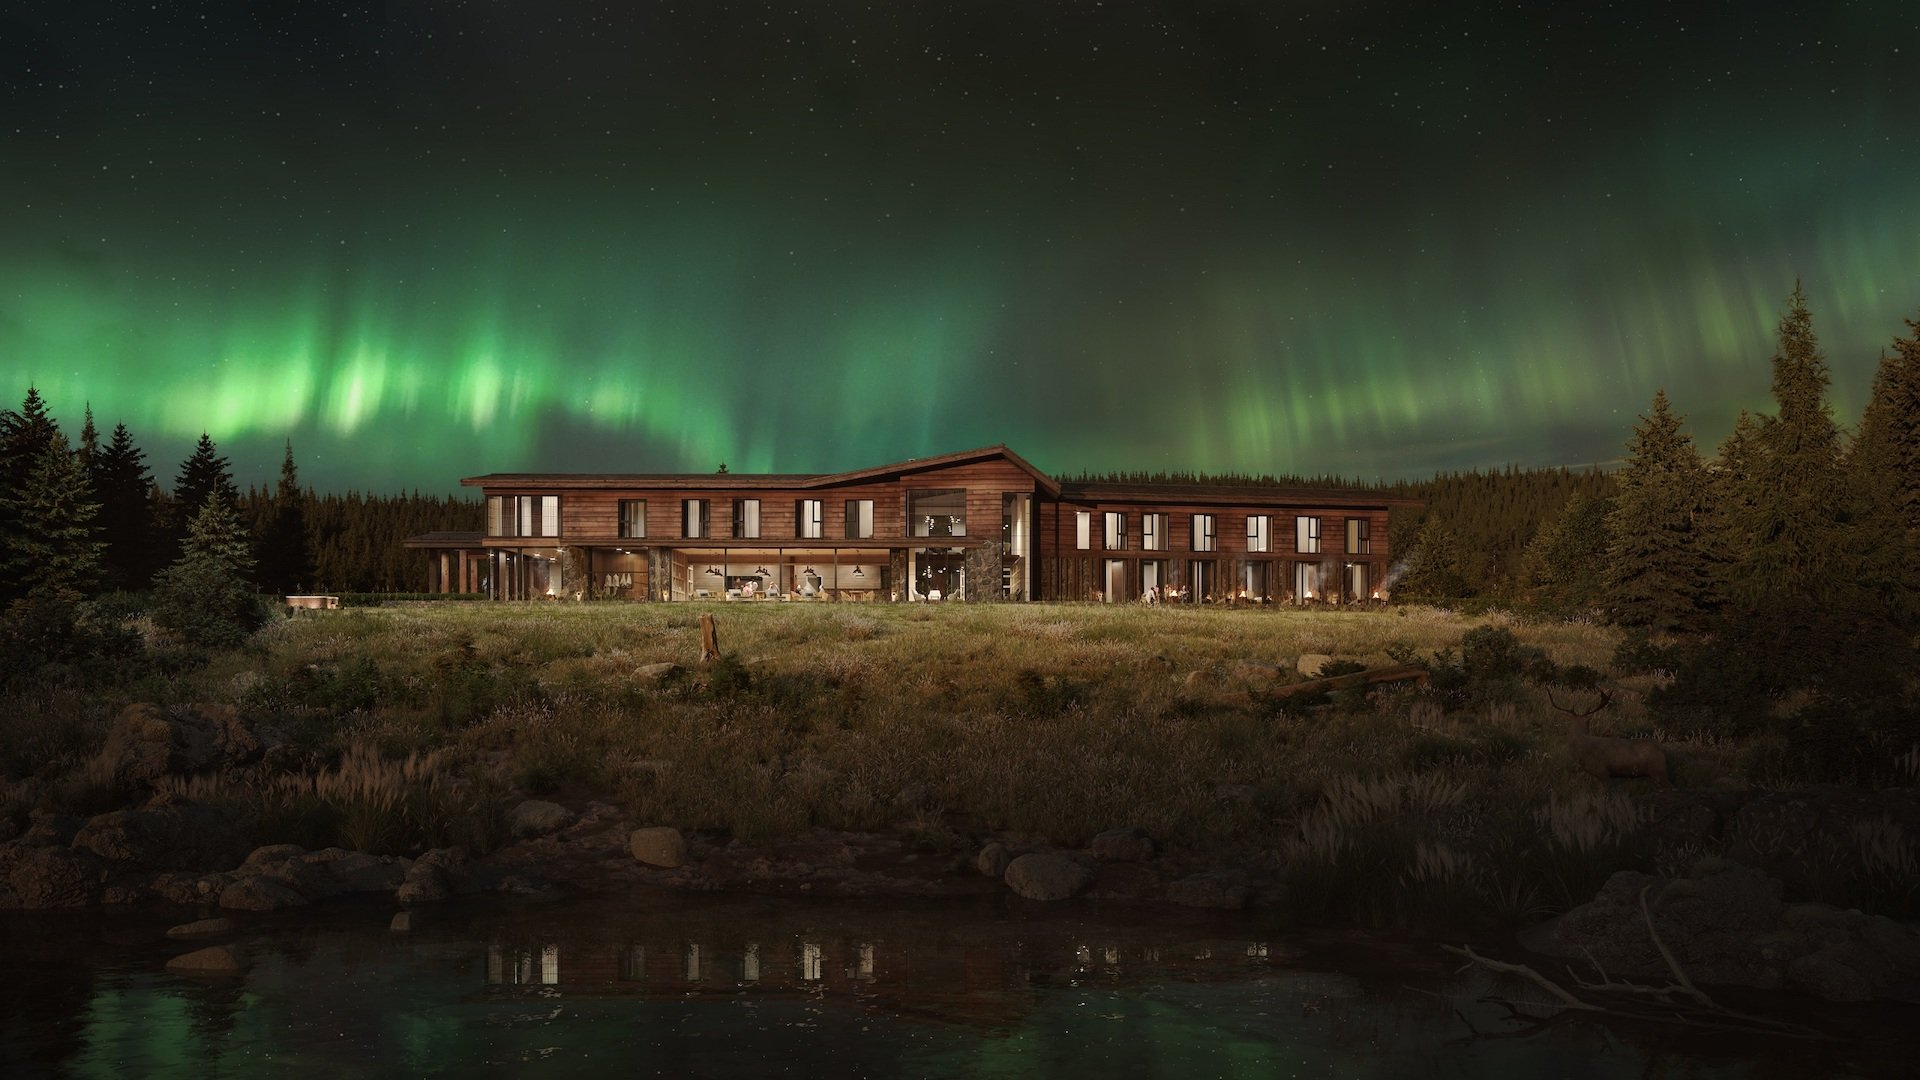 Atmospheric 3D Visualization of a Hotel at Night under the Northern Lights